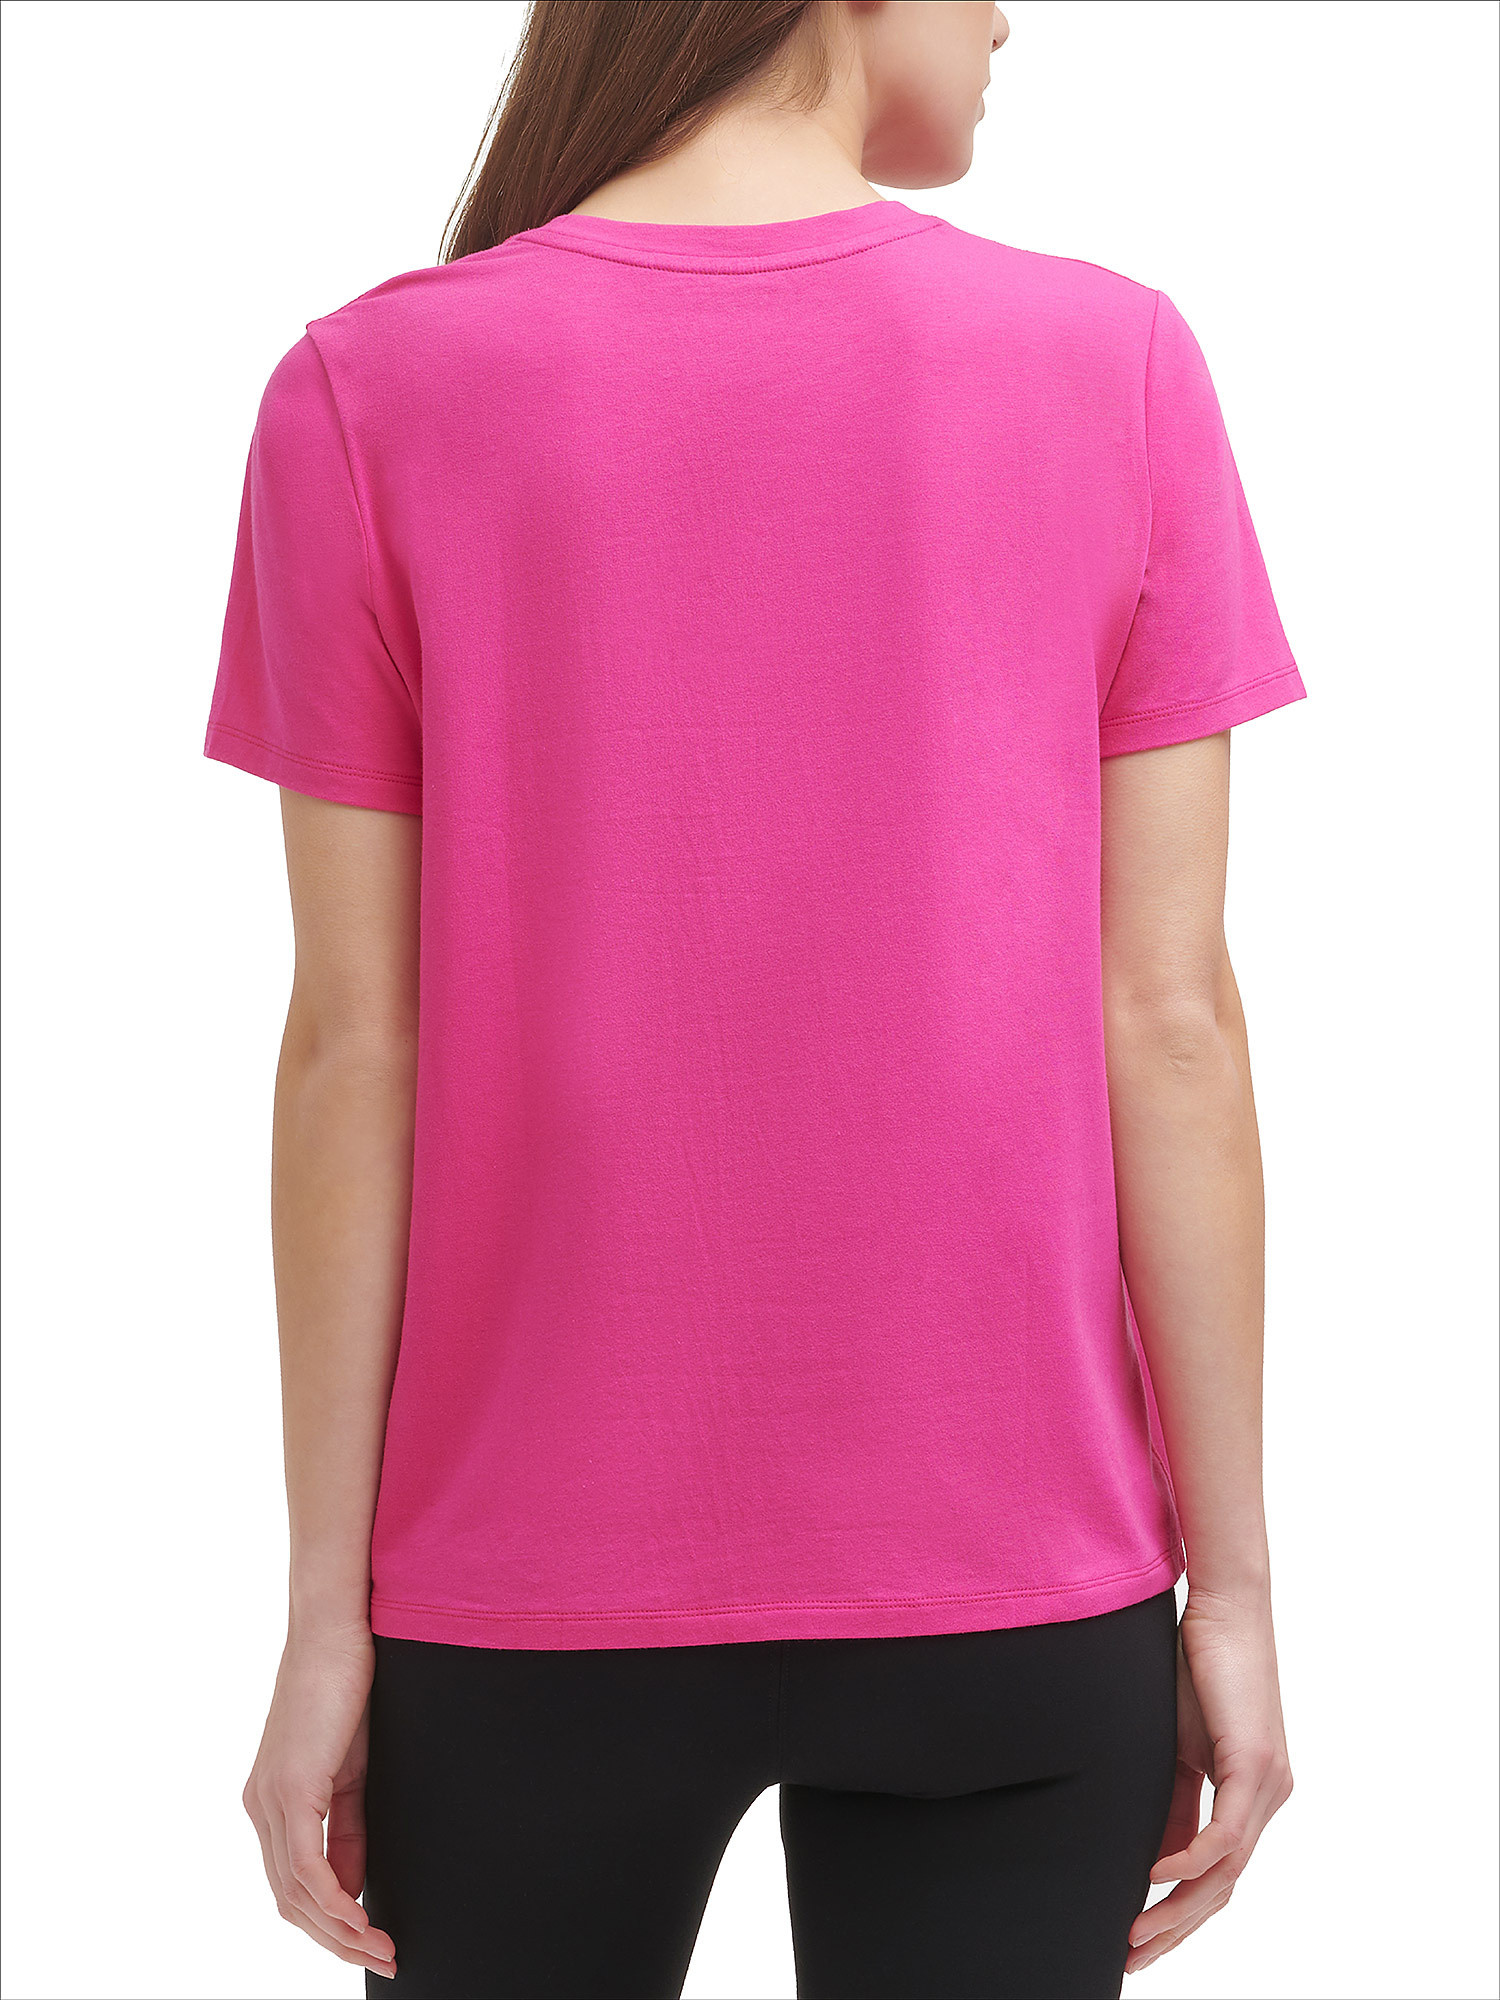 T-shirt con logo two tone, Rosso, large image number 3